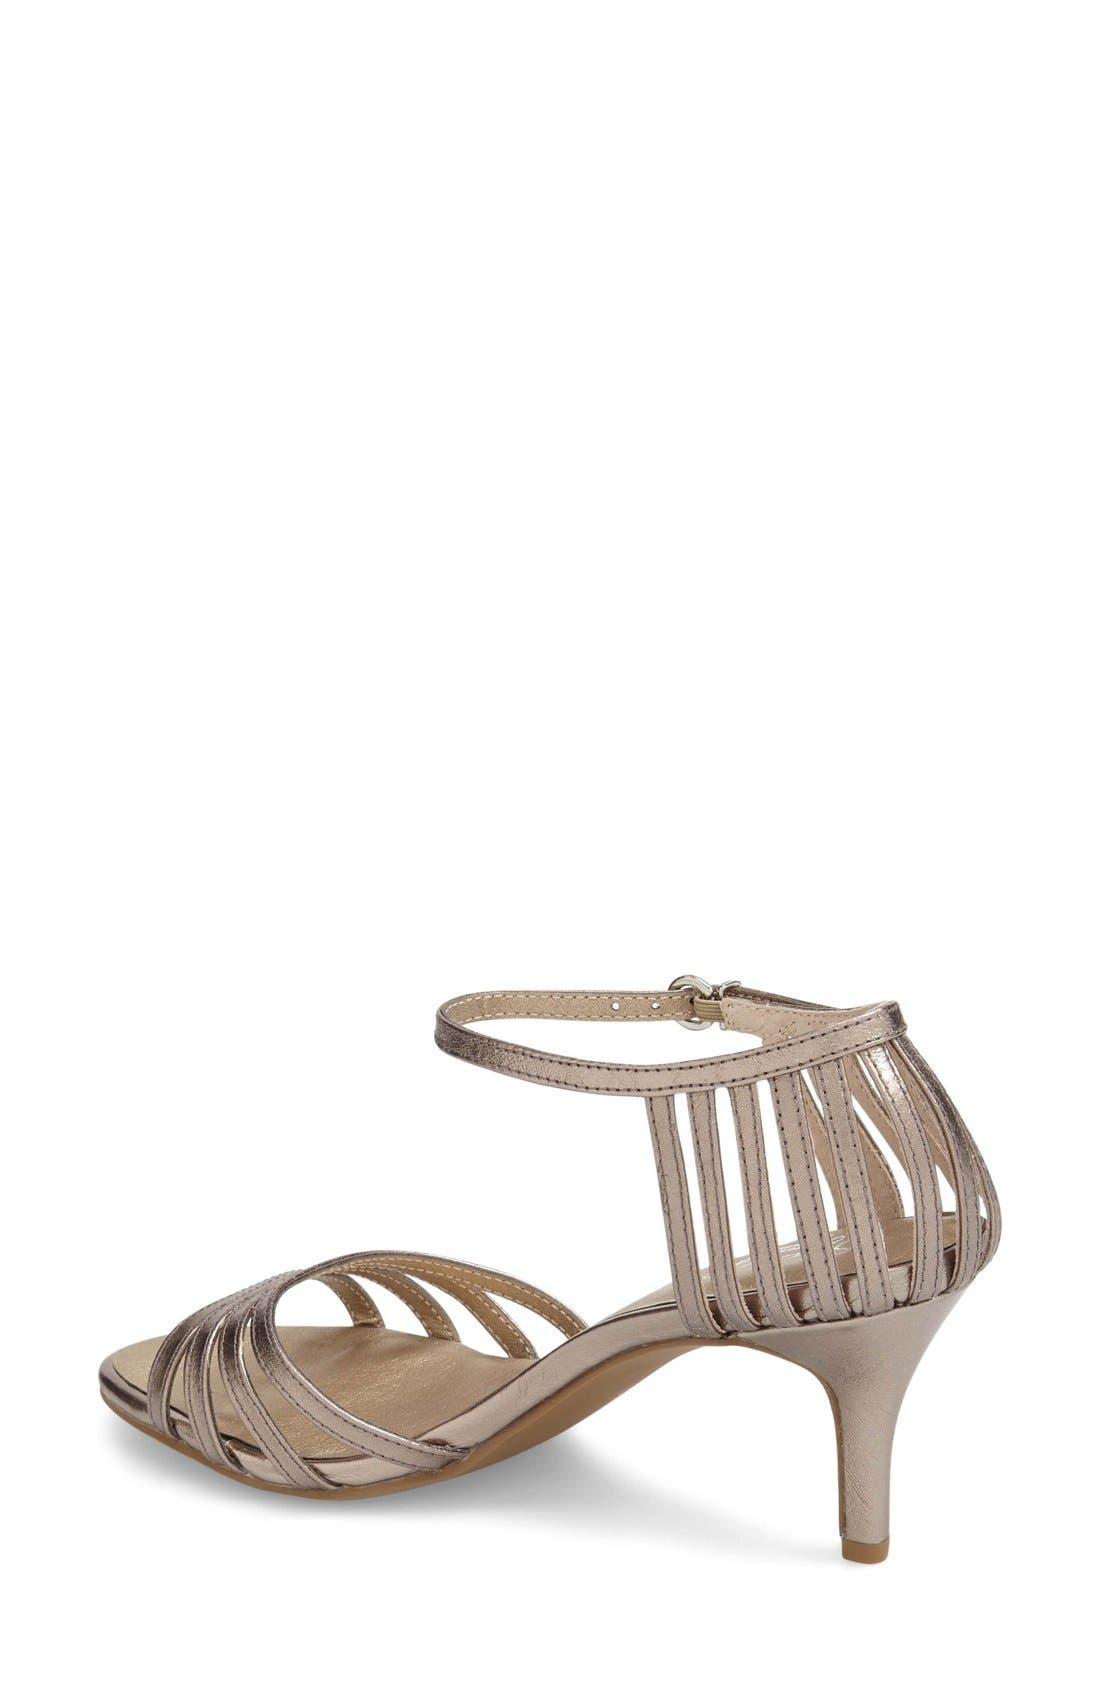 'Song and Dance' Ankle Strap Pump,                             Alternate thumbnail 2, color,                             022